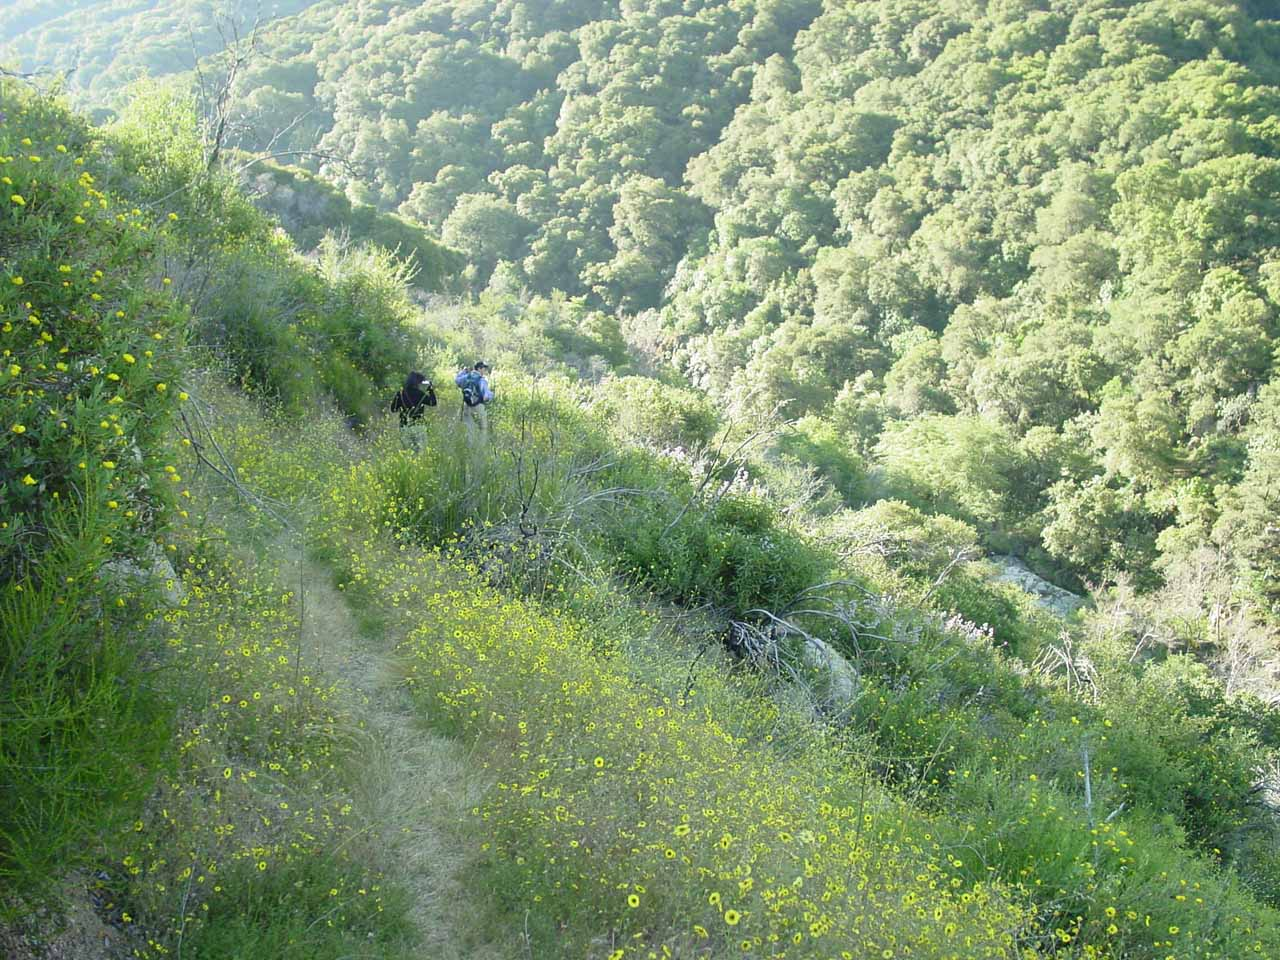 Mom and Dad on the scrambling path amidst wildflowers in search of a closer look at Middle Fork Tule River Falls